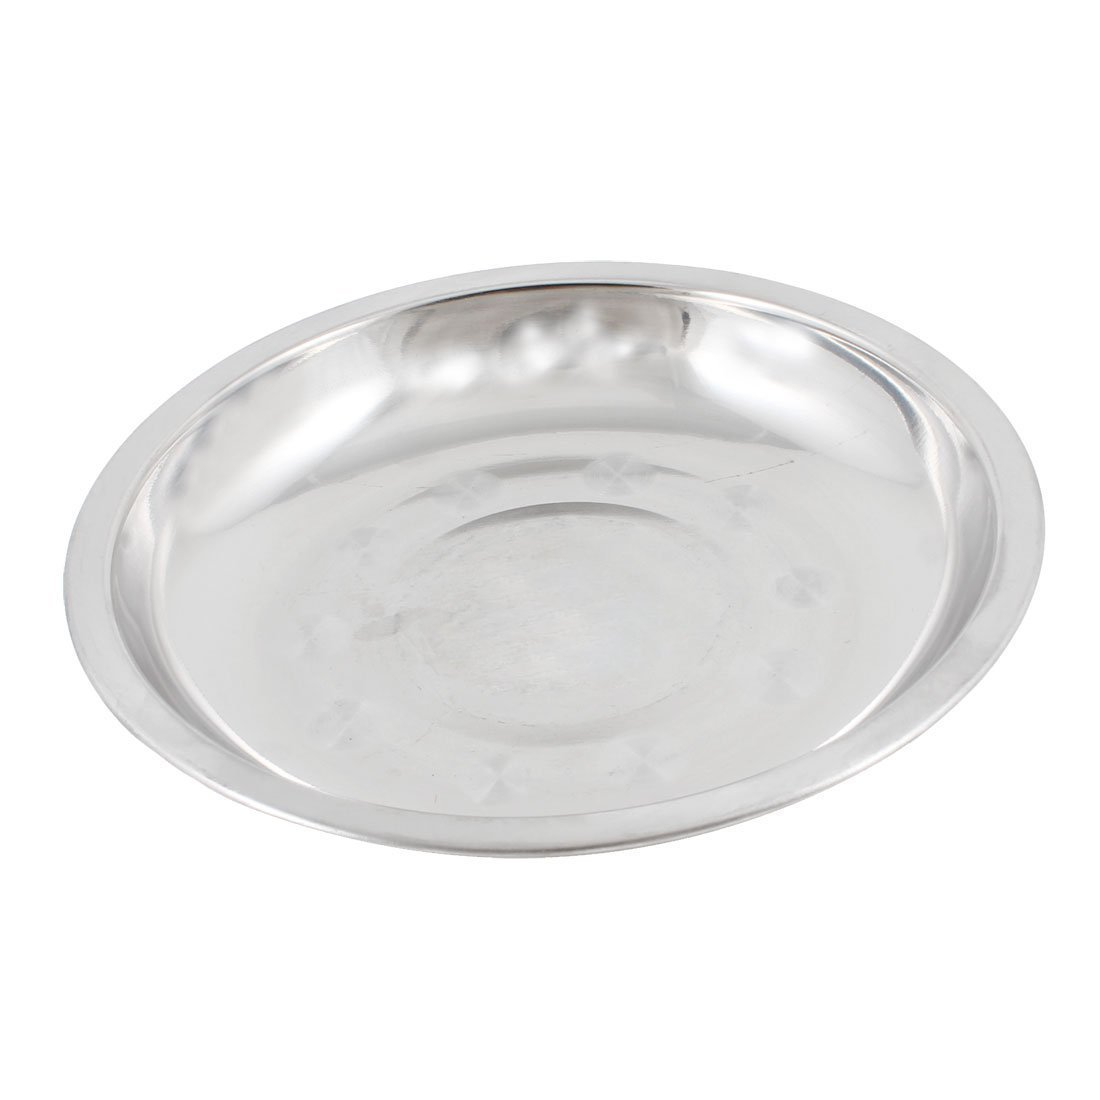 Get Quotations · Stainless Steel Dinner Plate - TOOGOO(R) C&ing 17.8cm Dia Stainless Steel Tableware  sc 1 st  Alibaba & Cheap Food Face Dinner Plate find Food Face Dinner Plate deals on ...